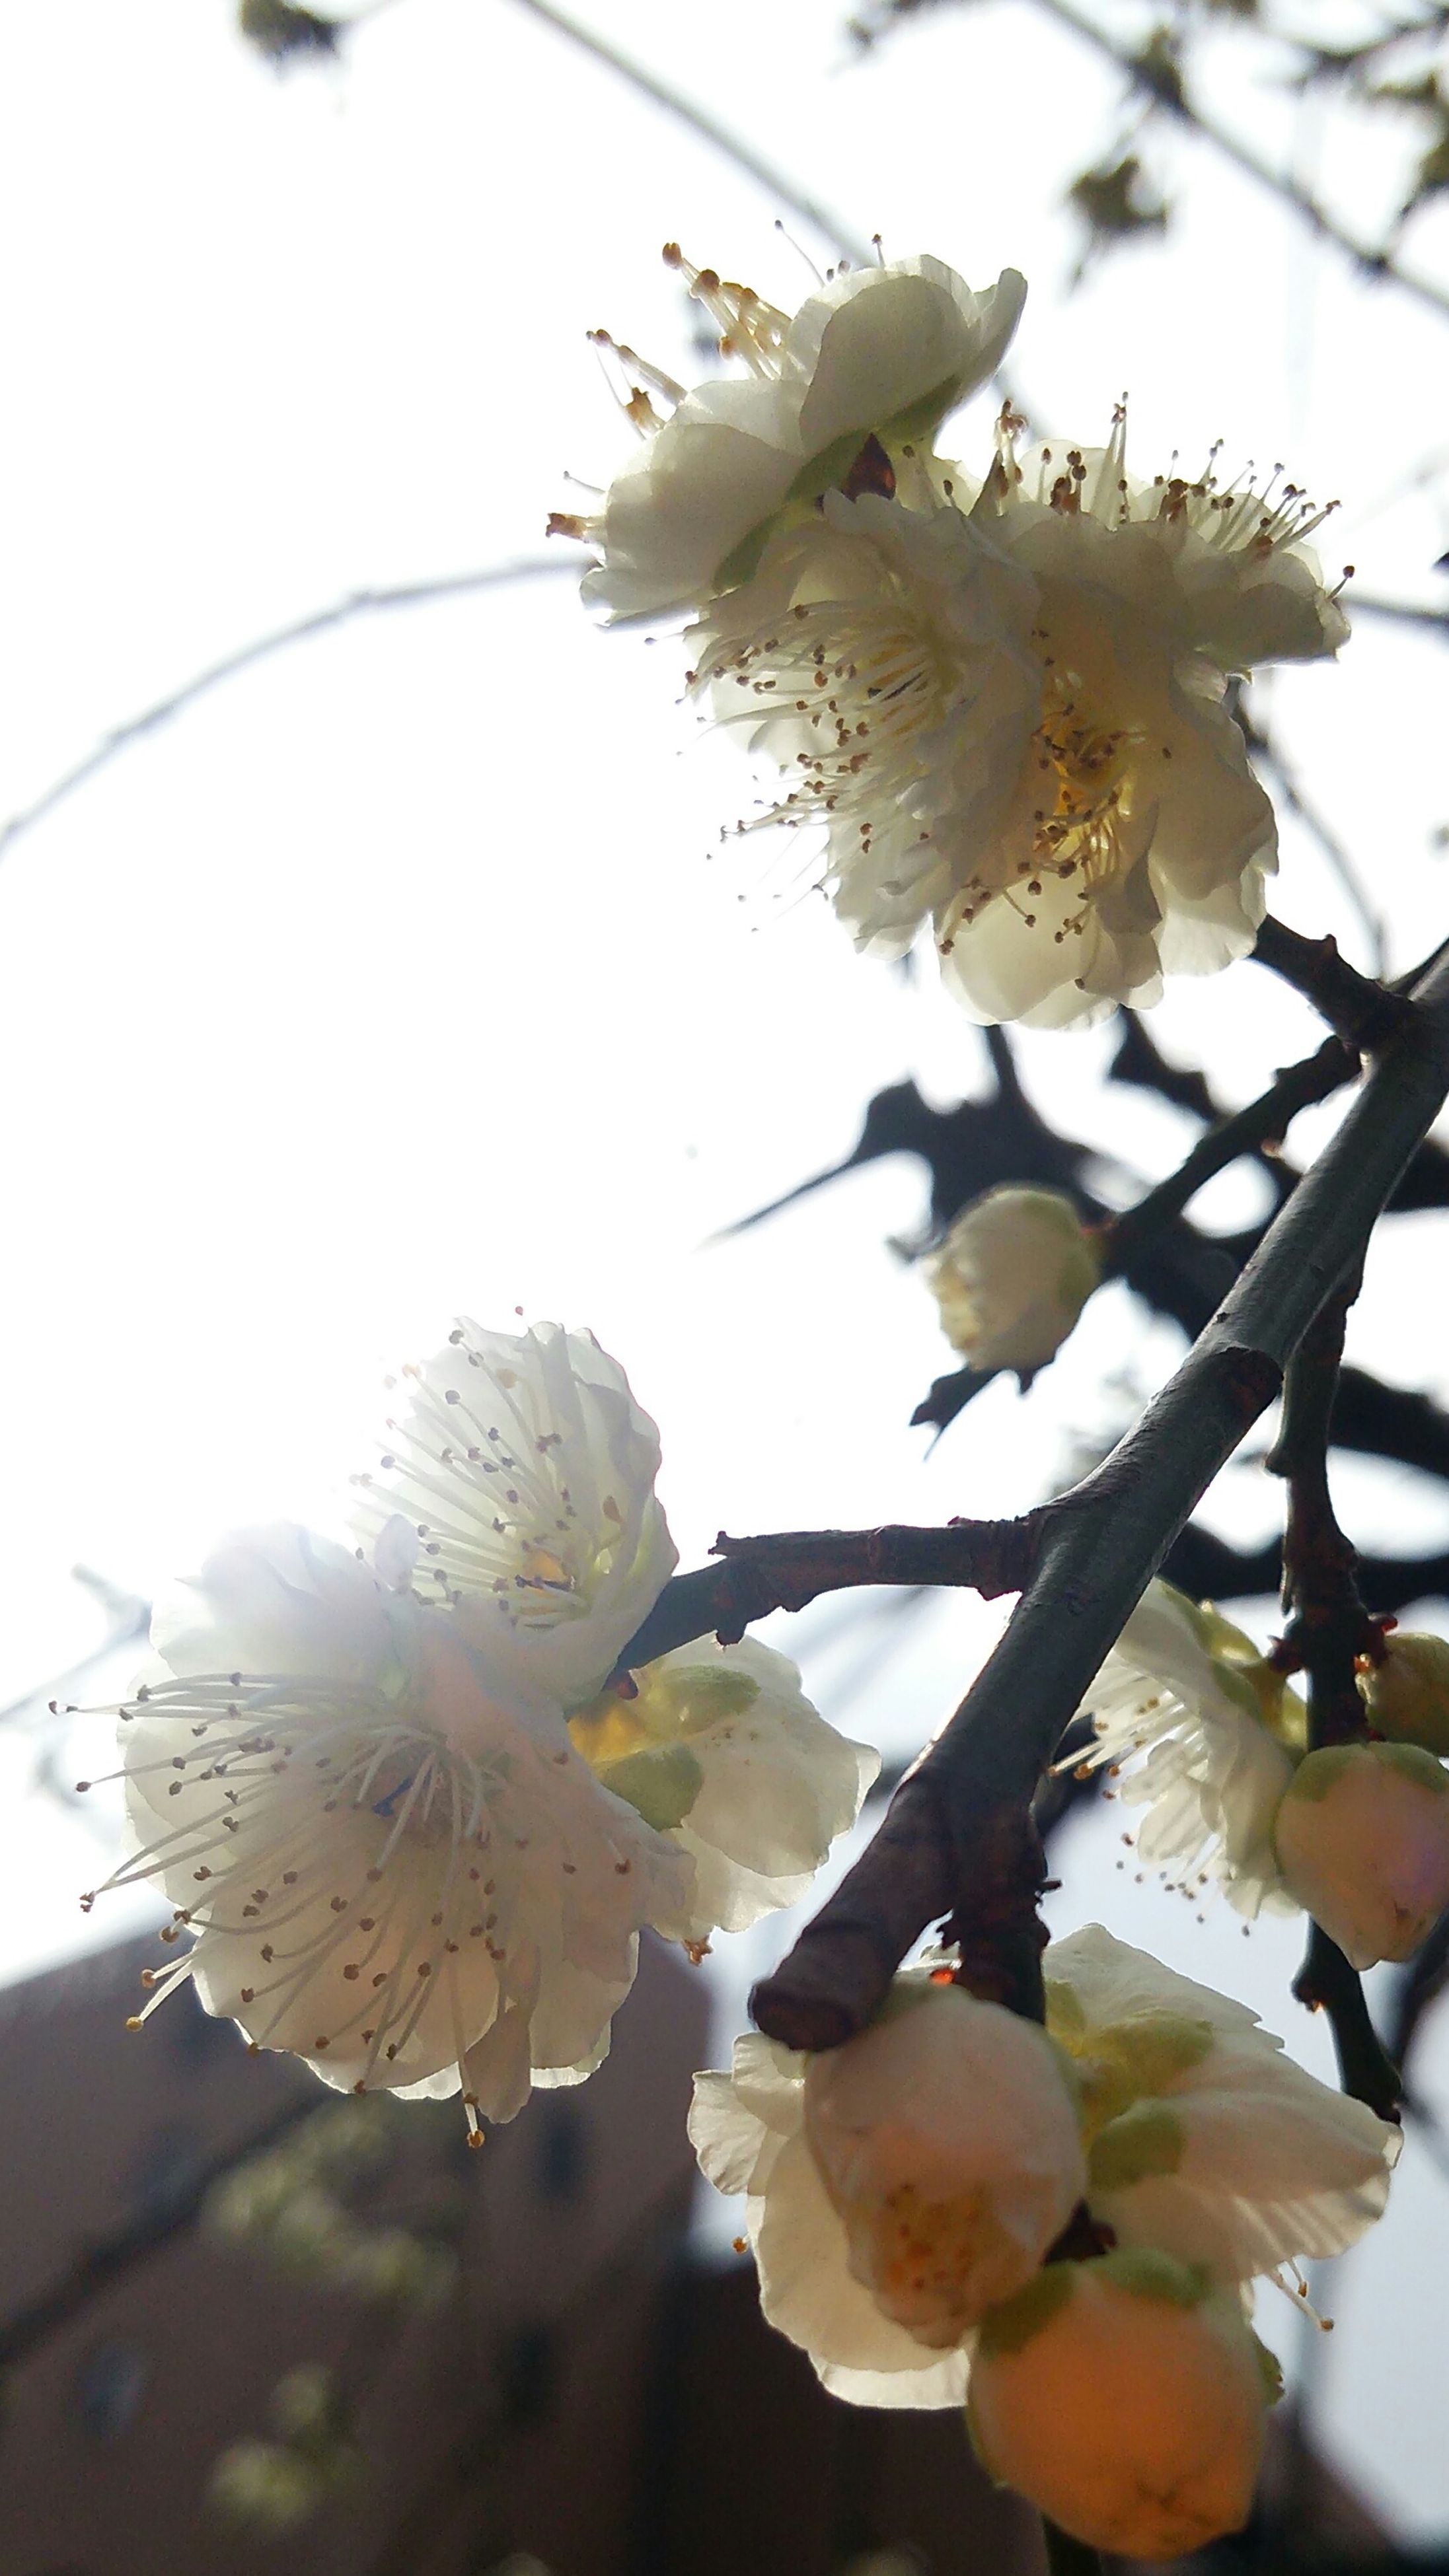 flower, freshness, fragility, petal, growth, close-up, flower head, beauty in nature, branch, nature, blooming, focus on foreground, blossom, white color, low angle view, tree, in bloom, plant, pollen, sunlight